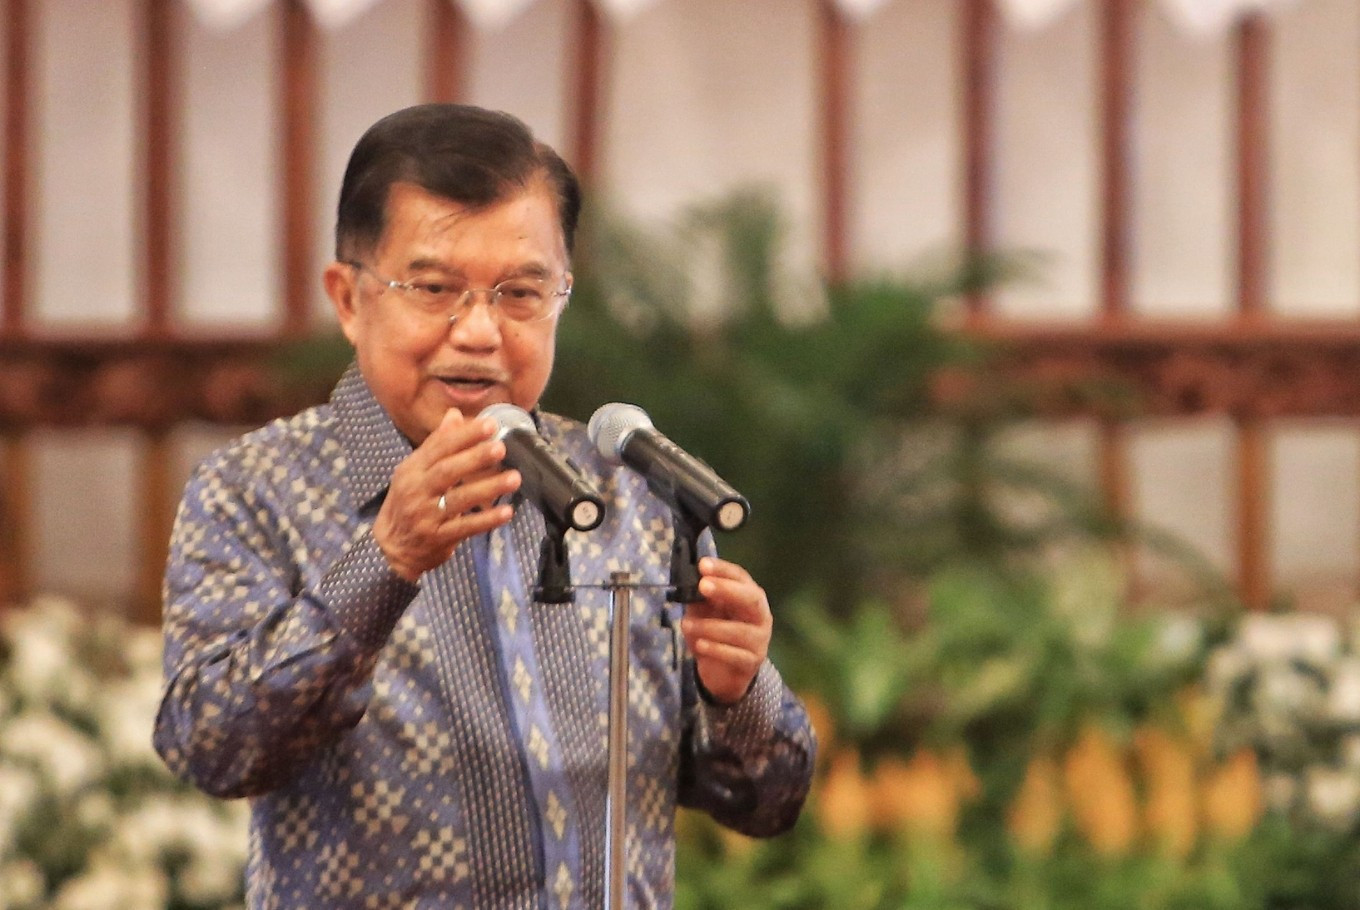 [DISCOURSE] 'Gotong royong' key to human fraternity: Former VP Kalla